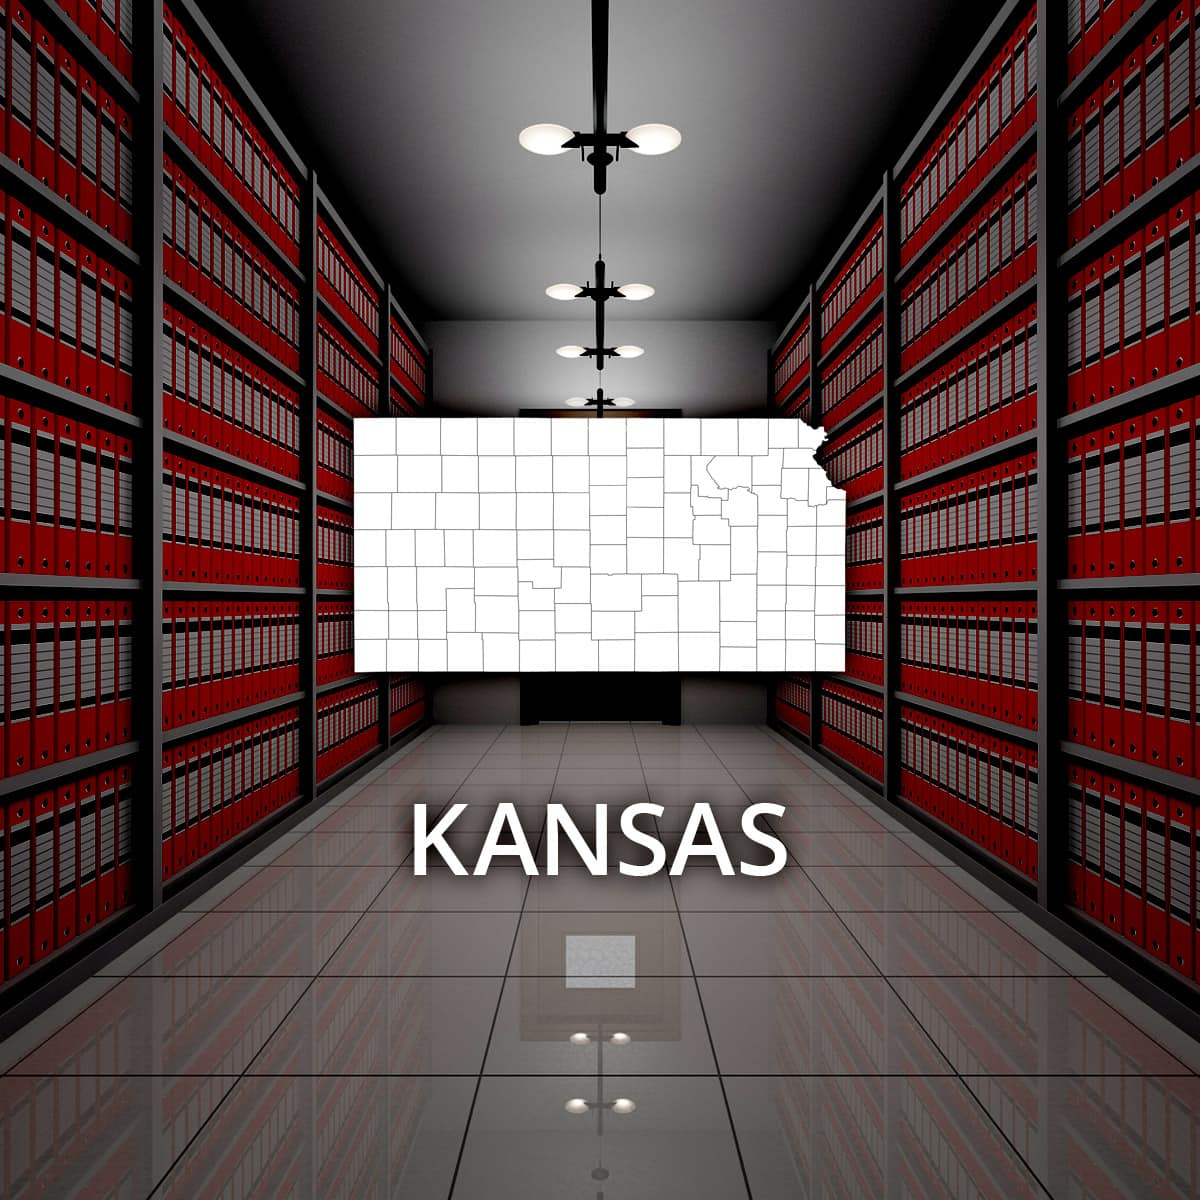 Kansas Public Records